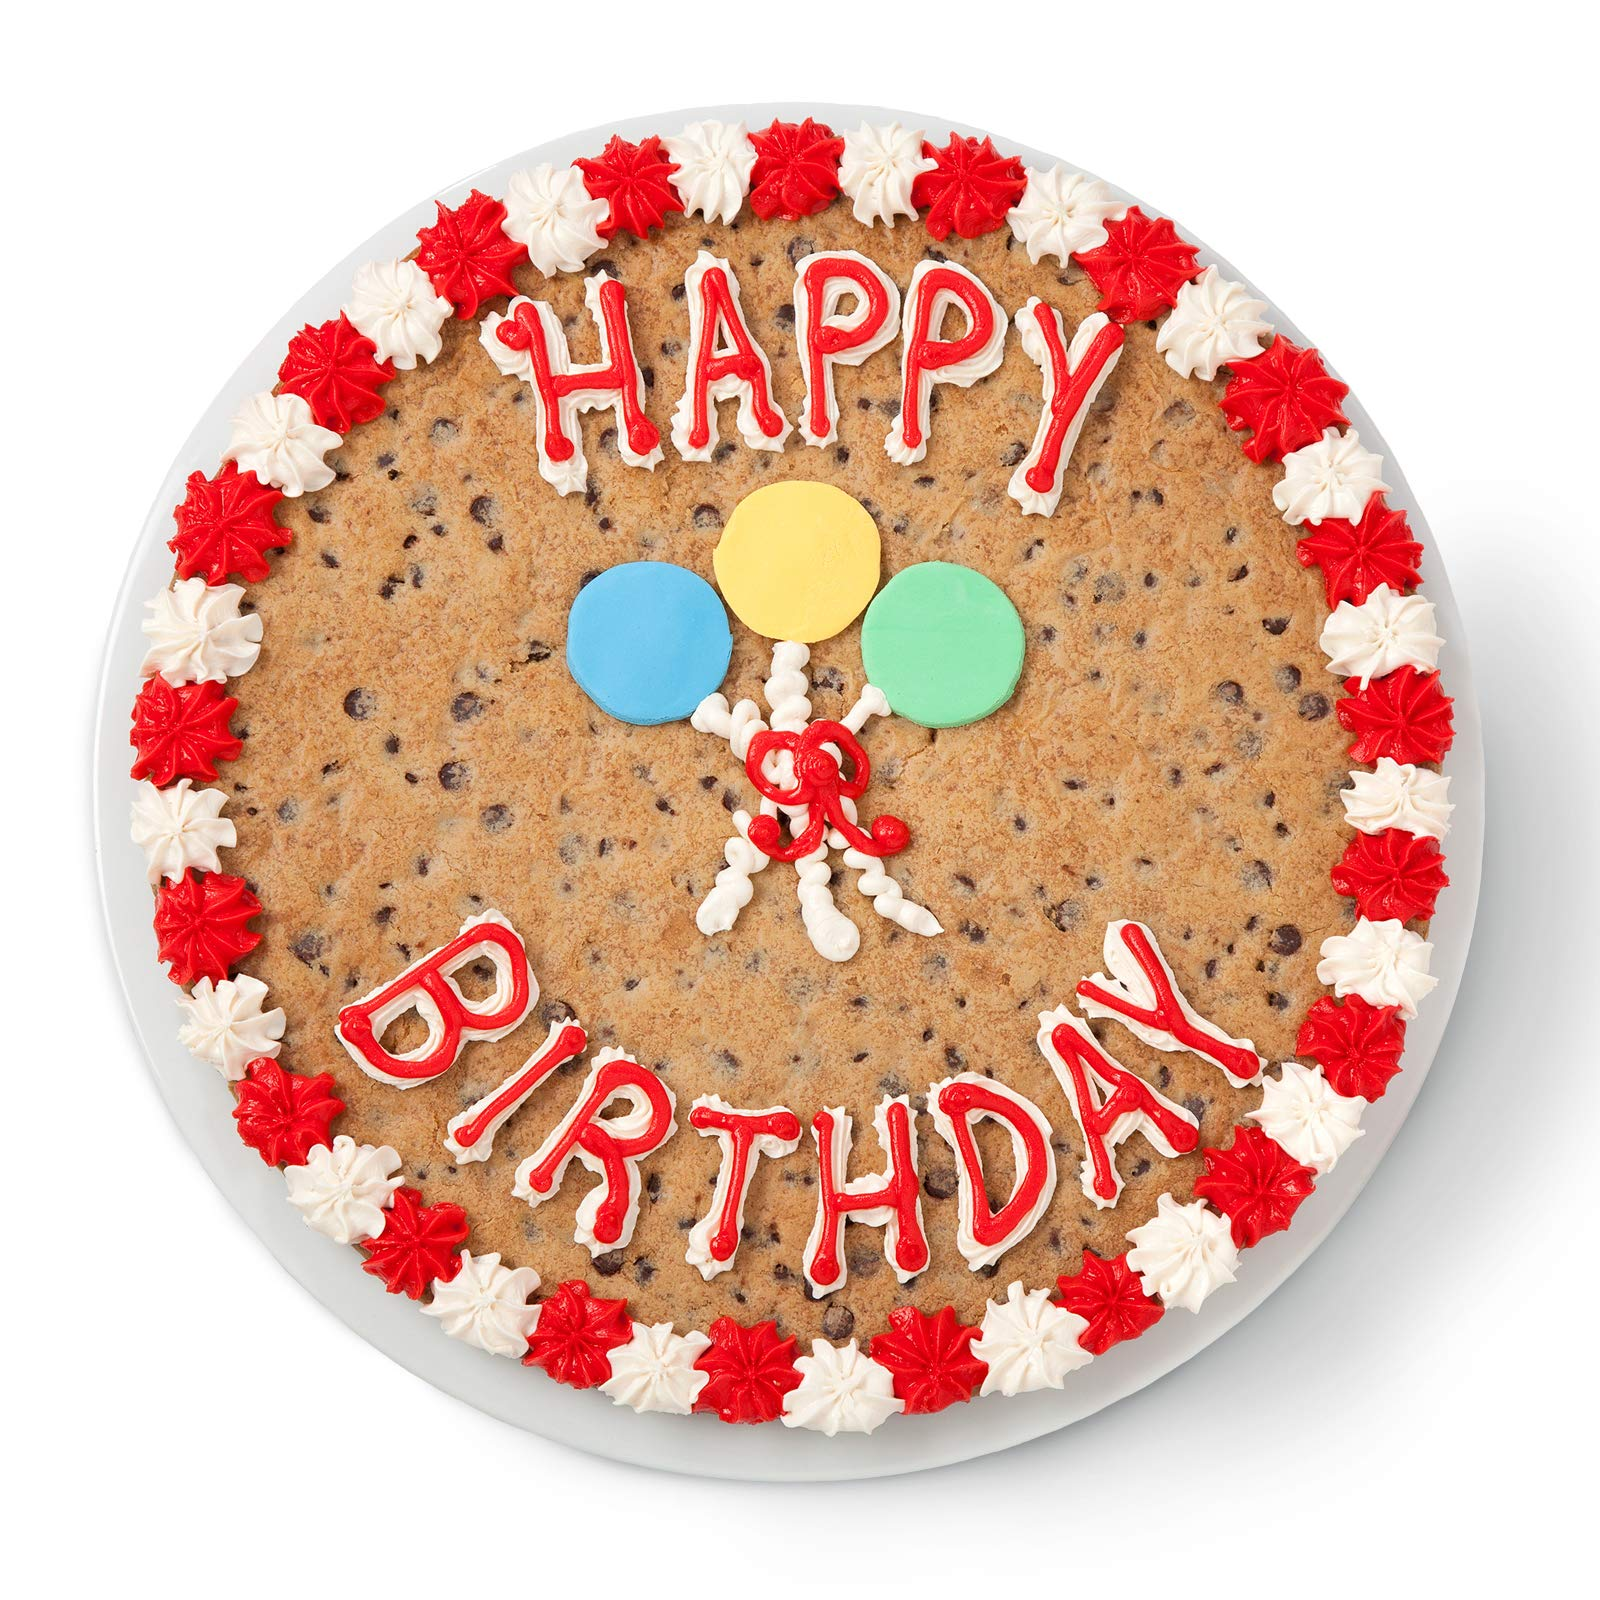 Awe Inspiring Mrs Fields Cookies Happy Birthday 12 Cookie Cake Hand Frosted Funny Birthday Cards Online Alyptdamsfinfo